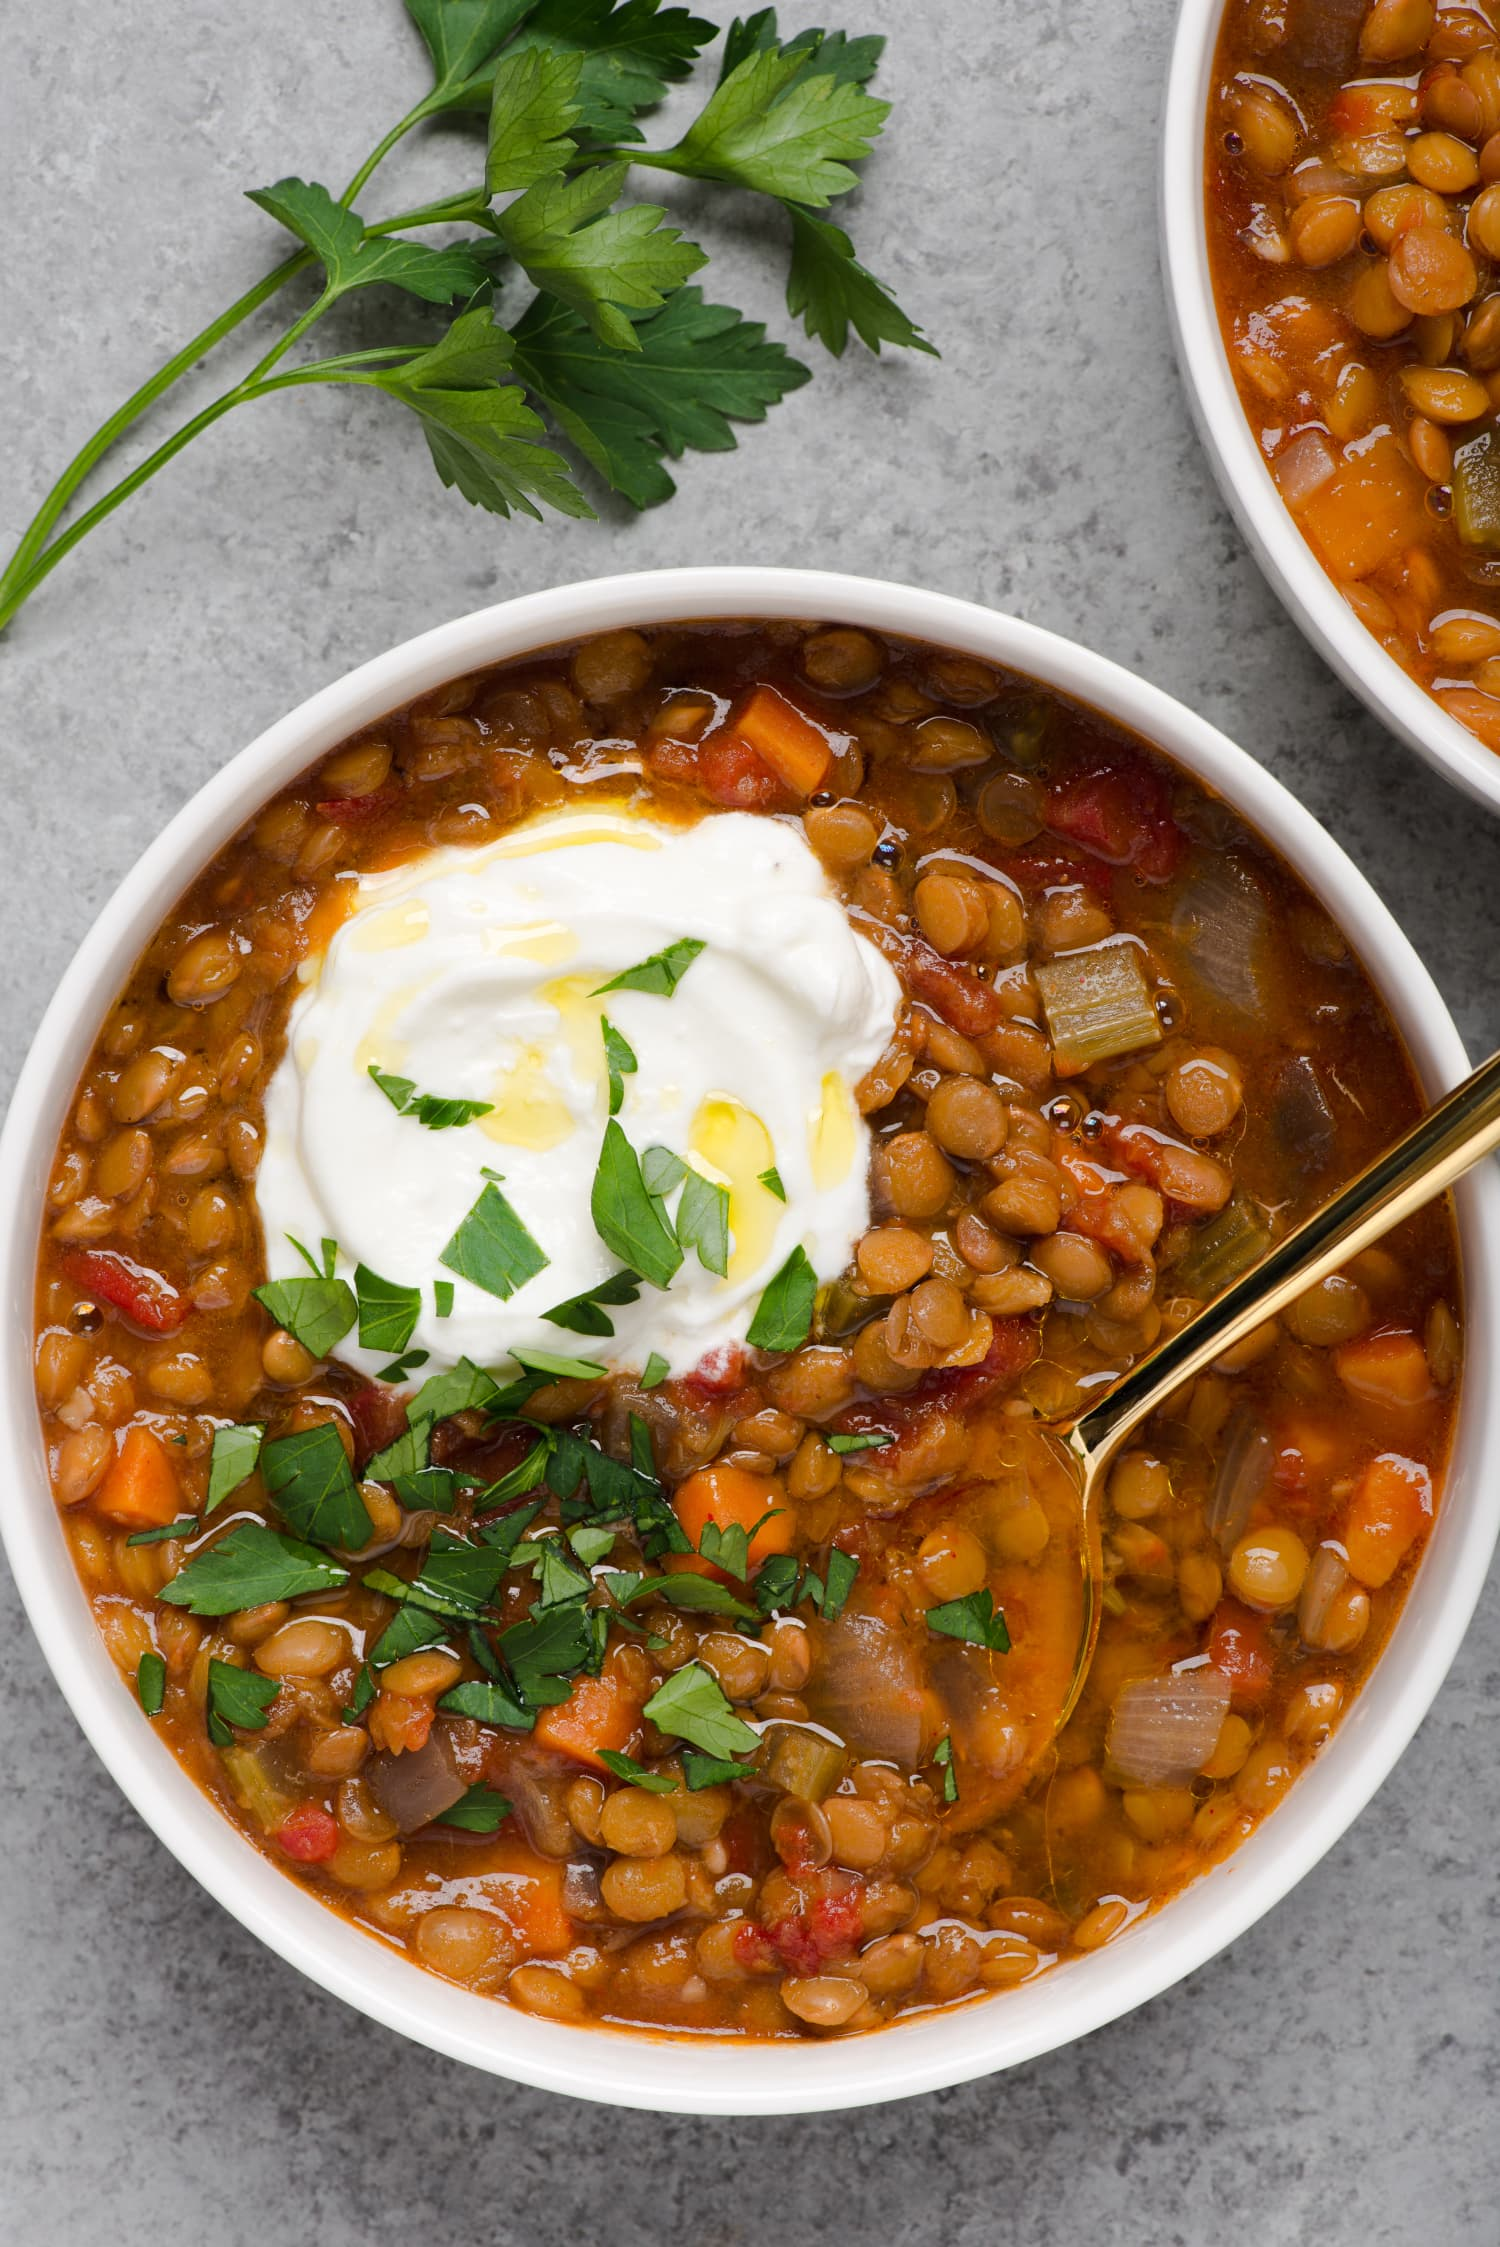 10 Recipes That Will Make You Fall in Love with Lentils